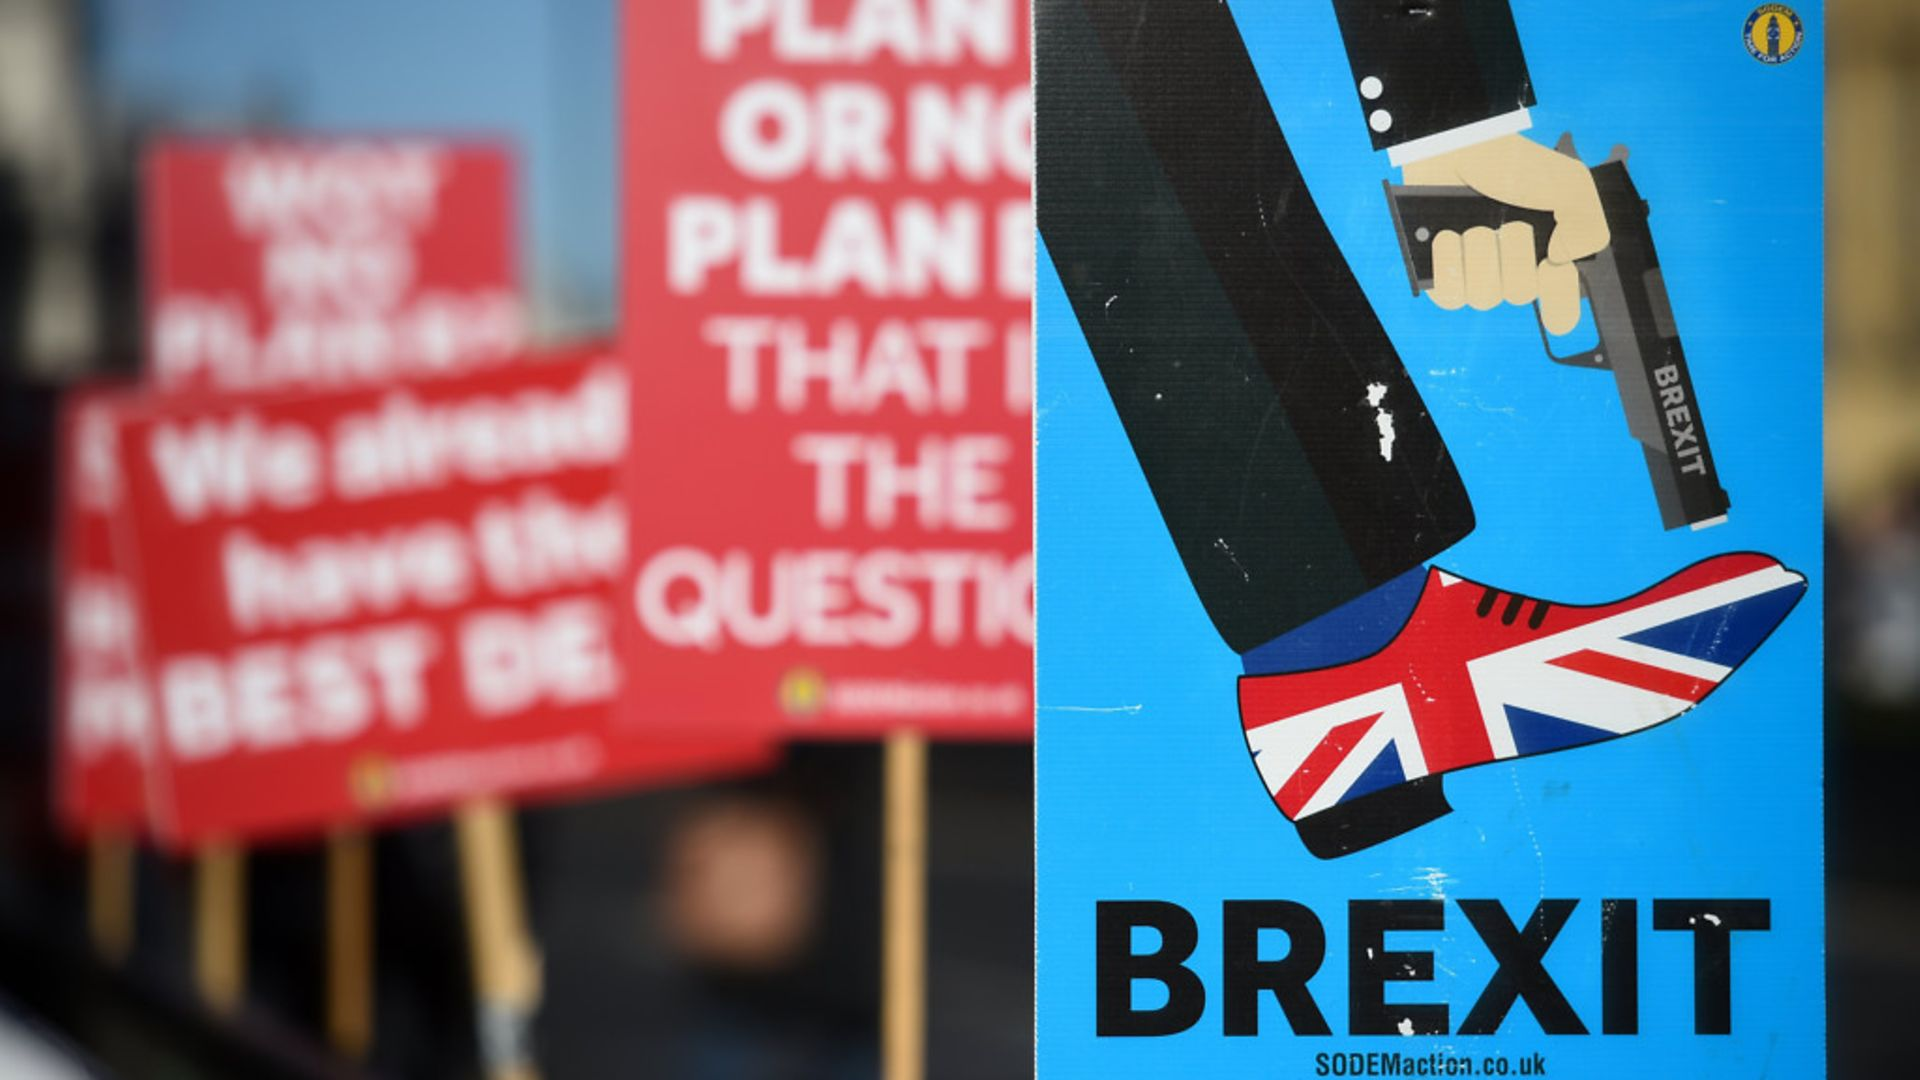 Anti-Brexit campaigners' placards outside the Houses of Parliament - Credit: PA Wire/PA Images